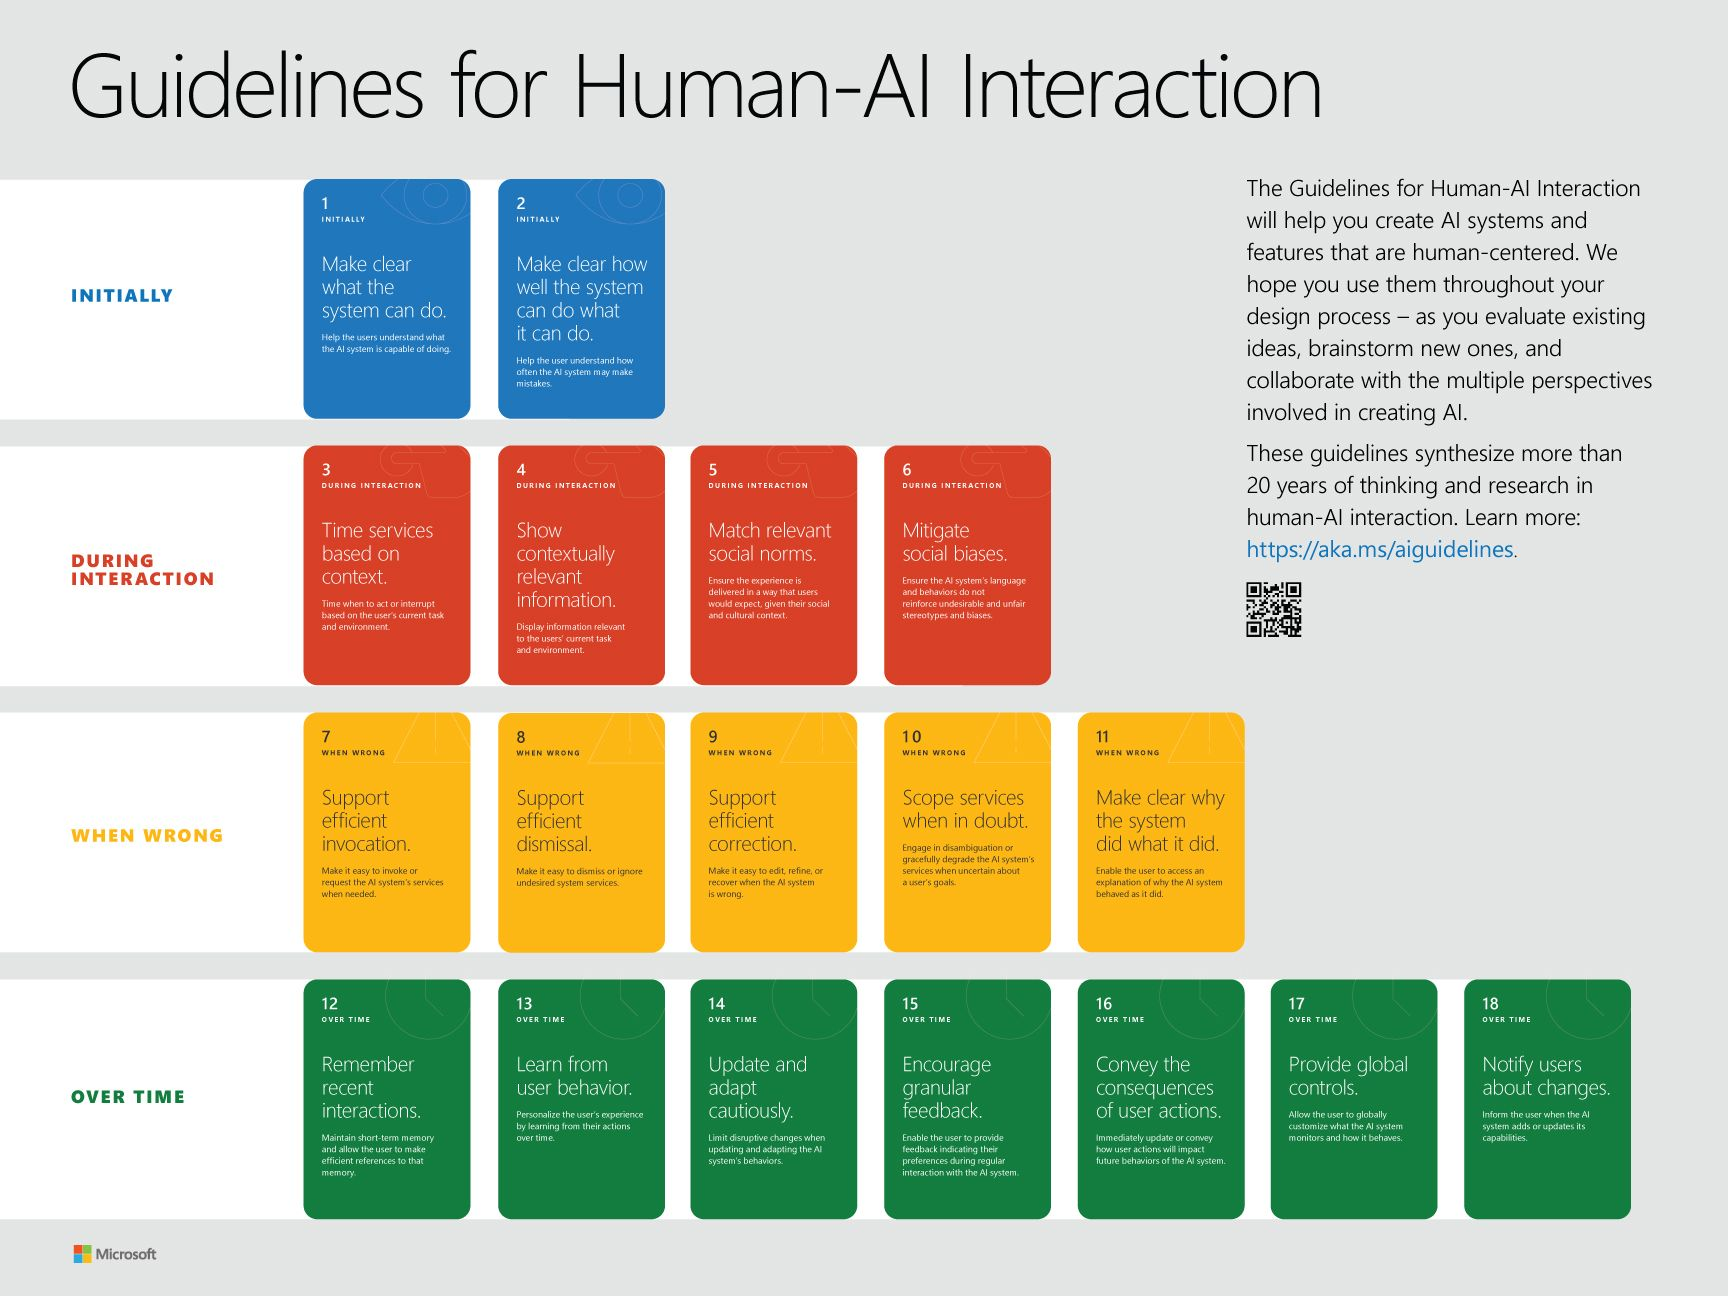 Microsoft's guidelines for Human-AI interaction